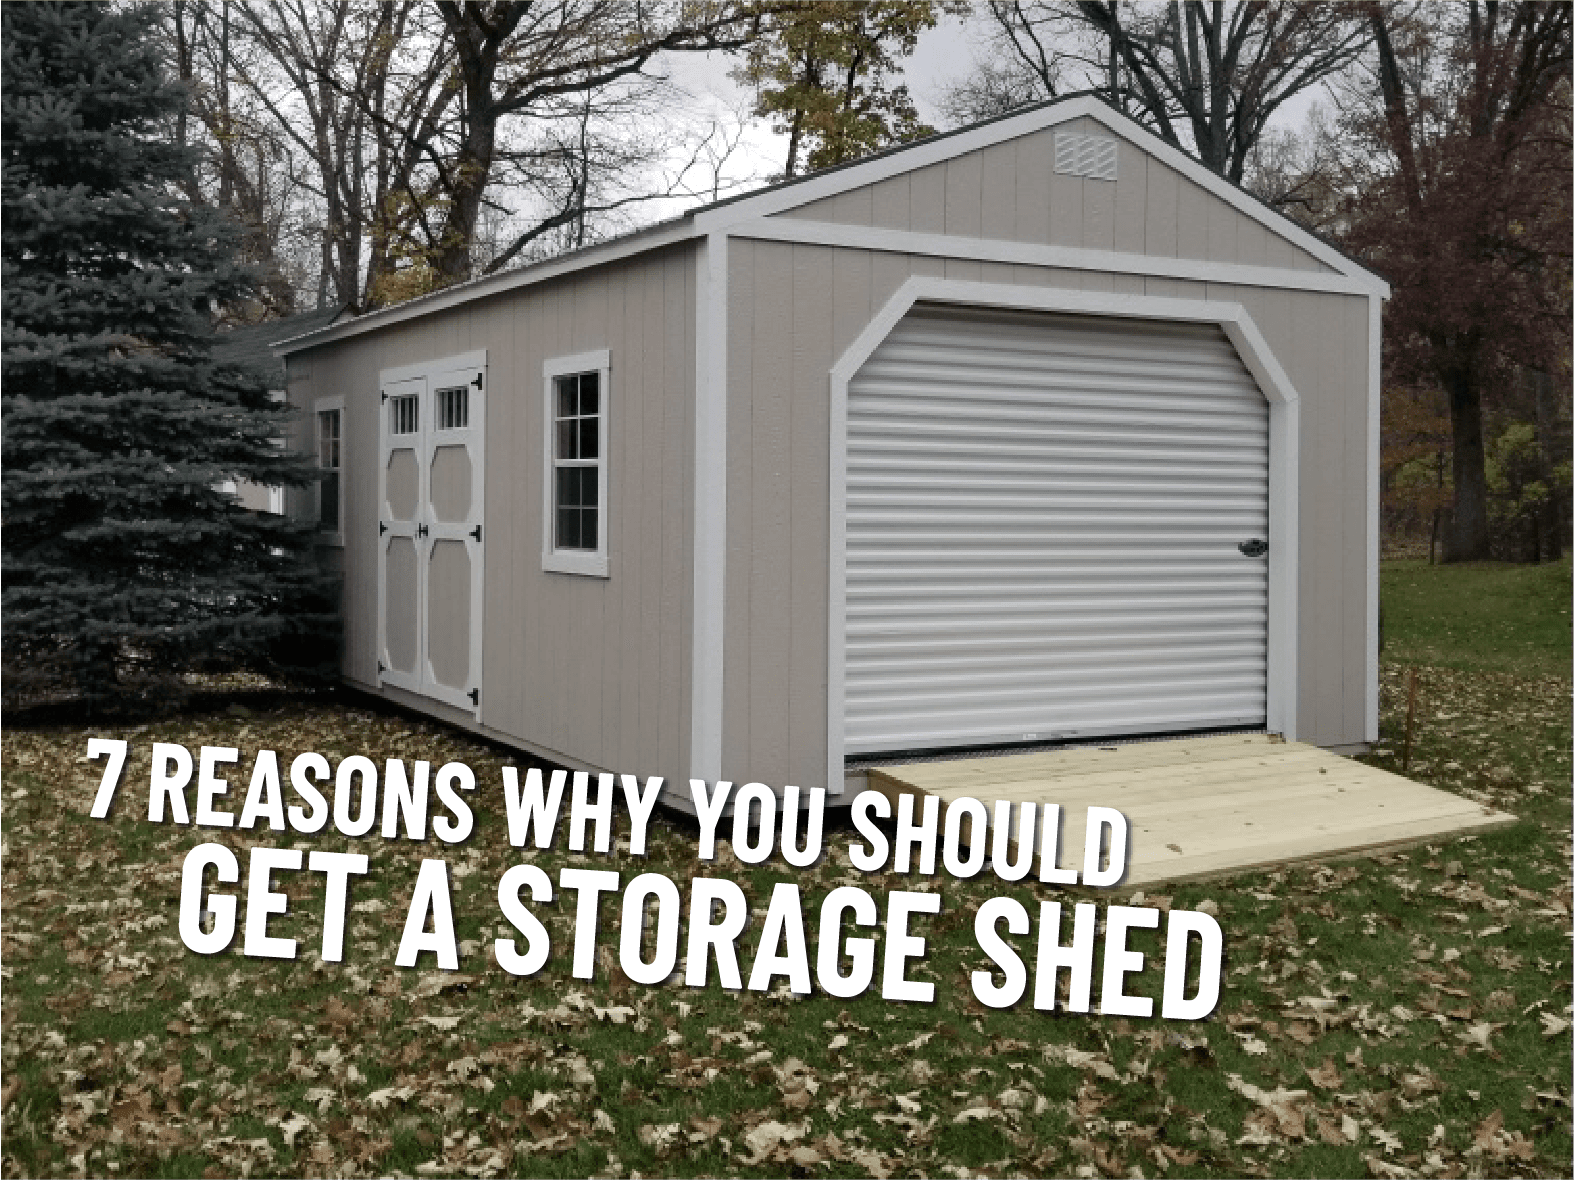 7 Reasons Why You Should Get a Storage Shed